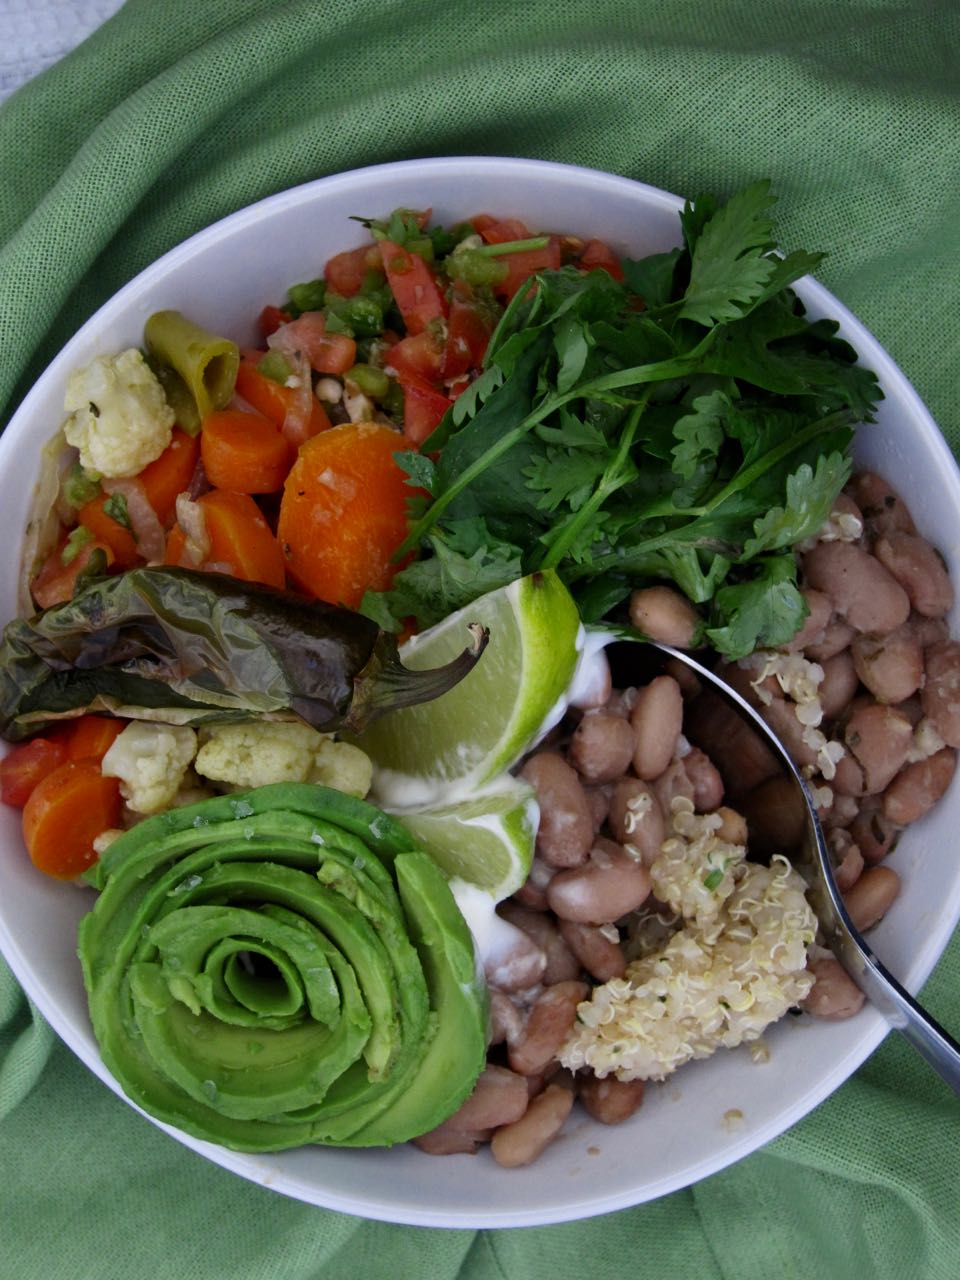 Pinto Quinoa Bowl with all the garnishes